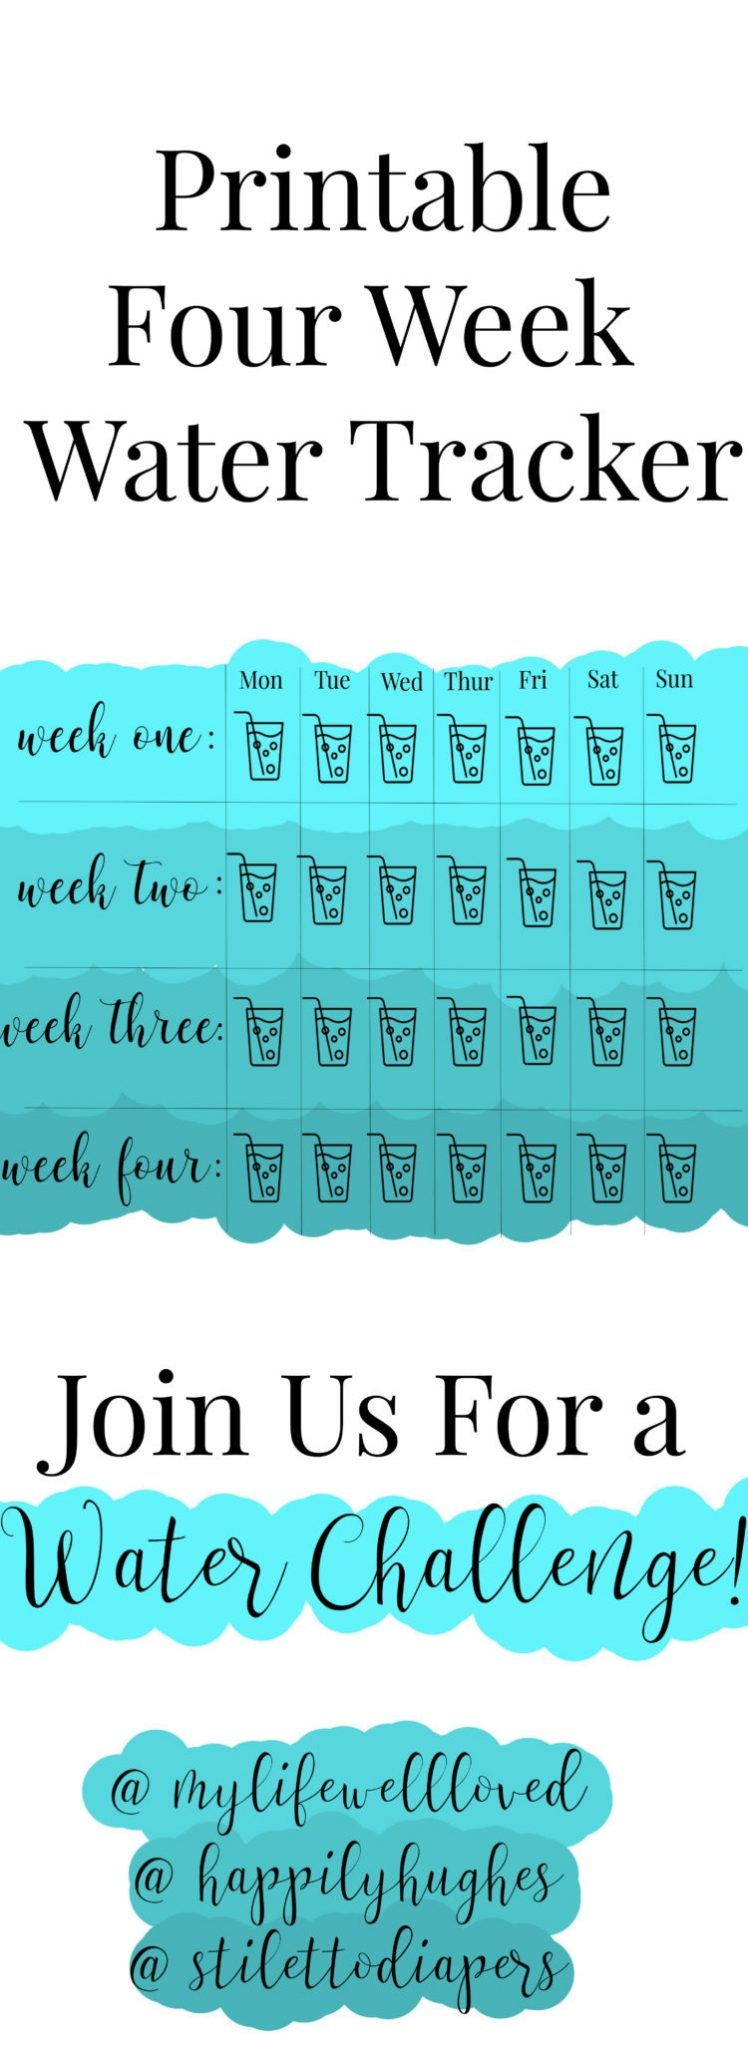 30 Day Water Challenge and printable water tracker from Alabama healthy lifestyle blogger Heather of MyLifeWellLoved.com // #waterchallenge #30daychallenge